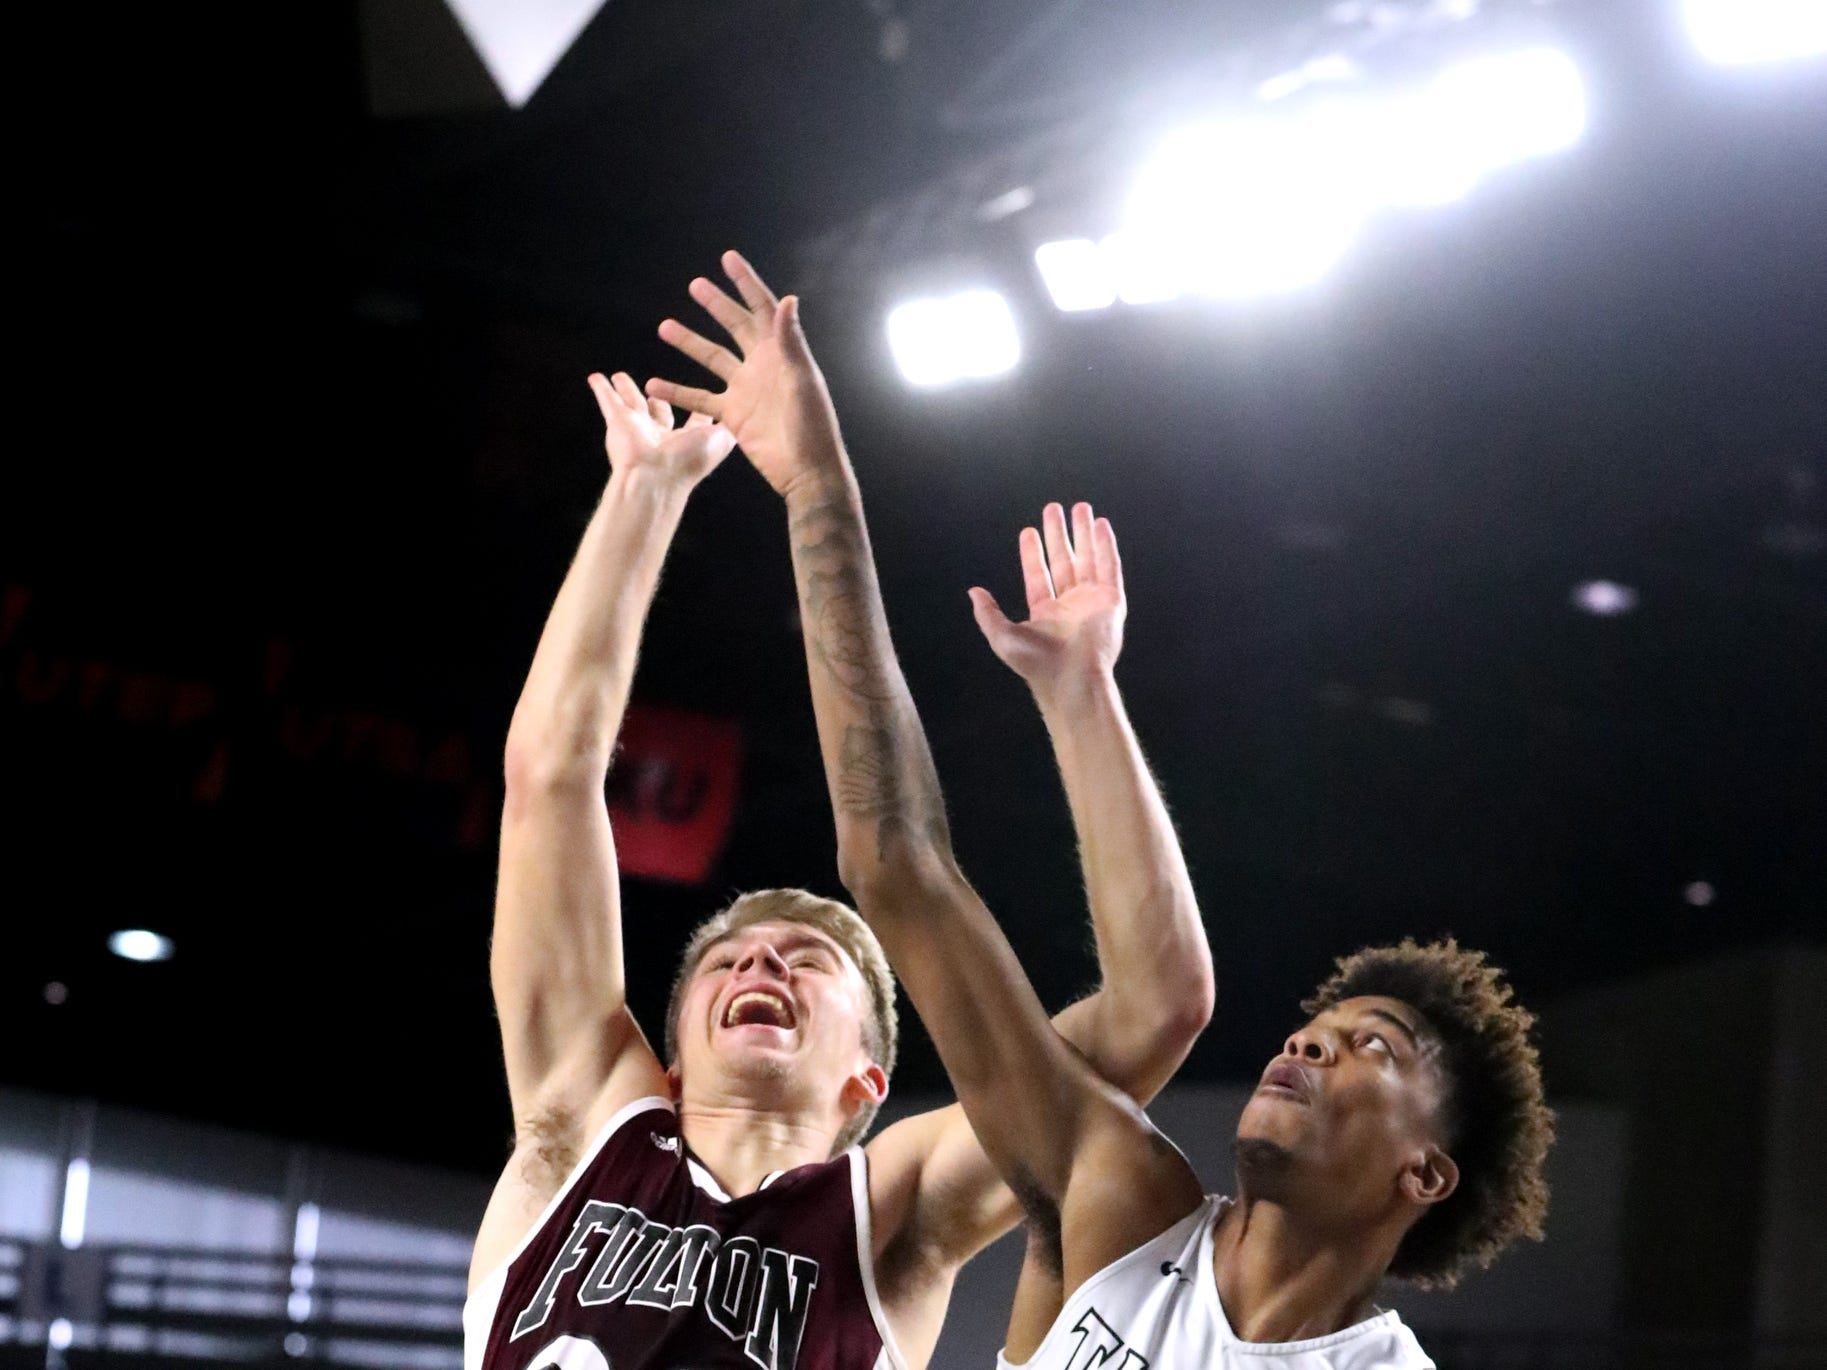 Fulton's Tommy Sweat (22) shoots the ball as Mitchell's Juwon Harris (3) and Mitchell's Cameron Powers (32) guard him during the quarterfinal round of the TSSAA Class AA Boys State Tournament, on Wednesday, March 13, 2019, at Murphy Center in Murfreesboro, Tenn.